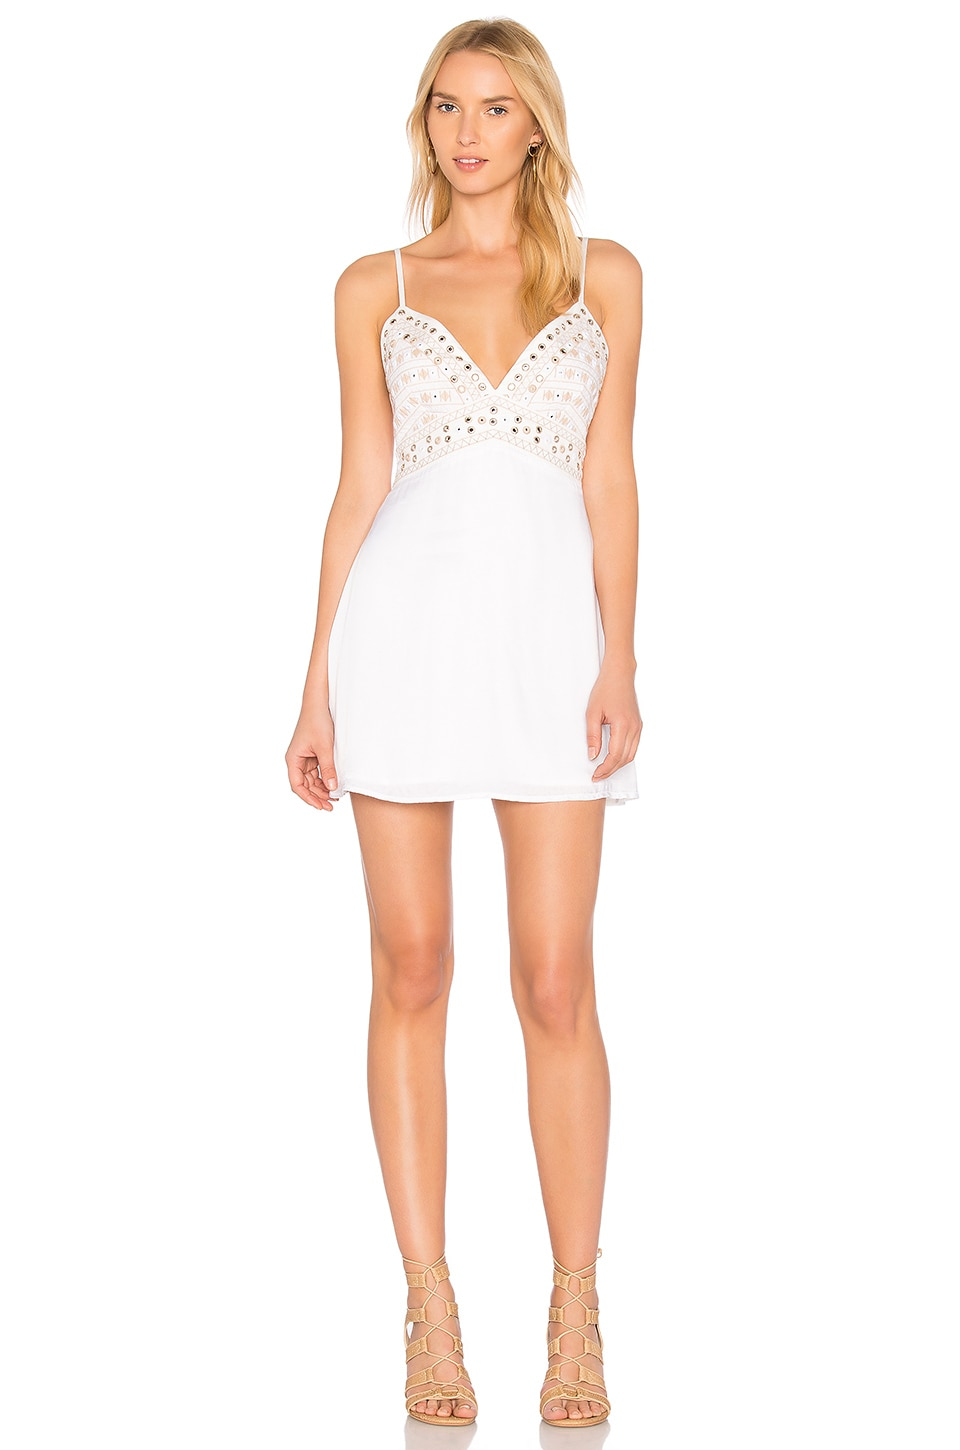 Anchor Dress by Majorelle